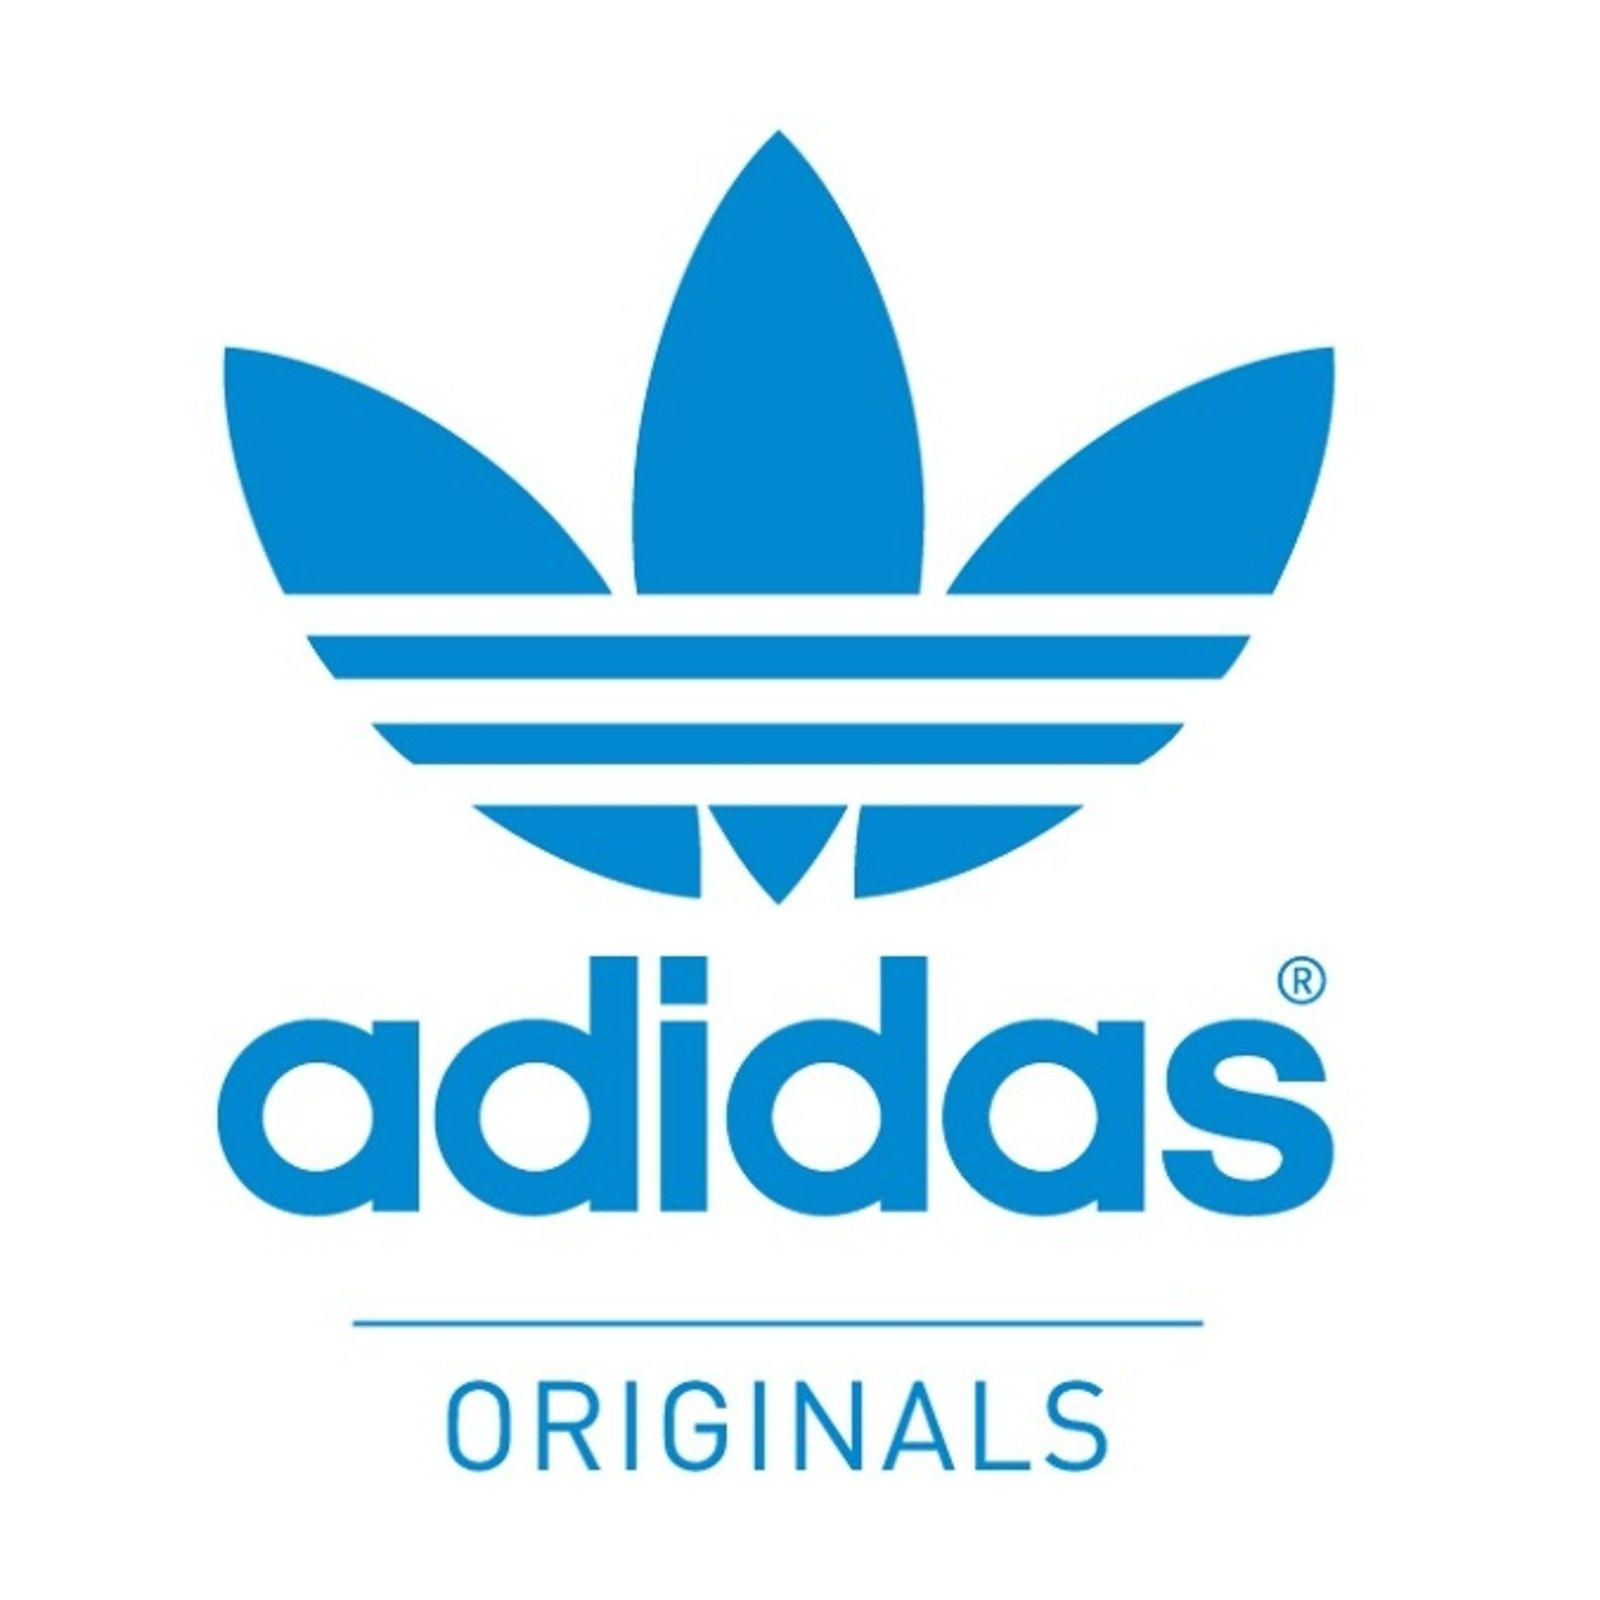 adidas Originals (Image 1)